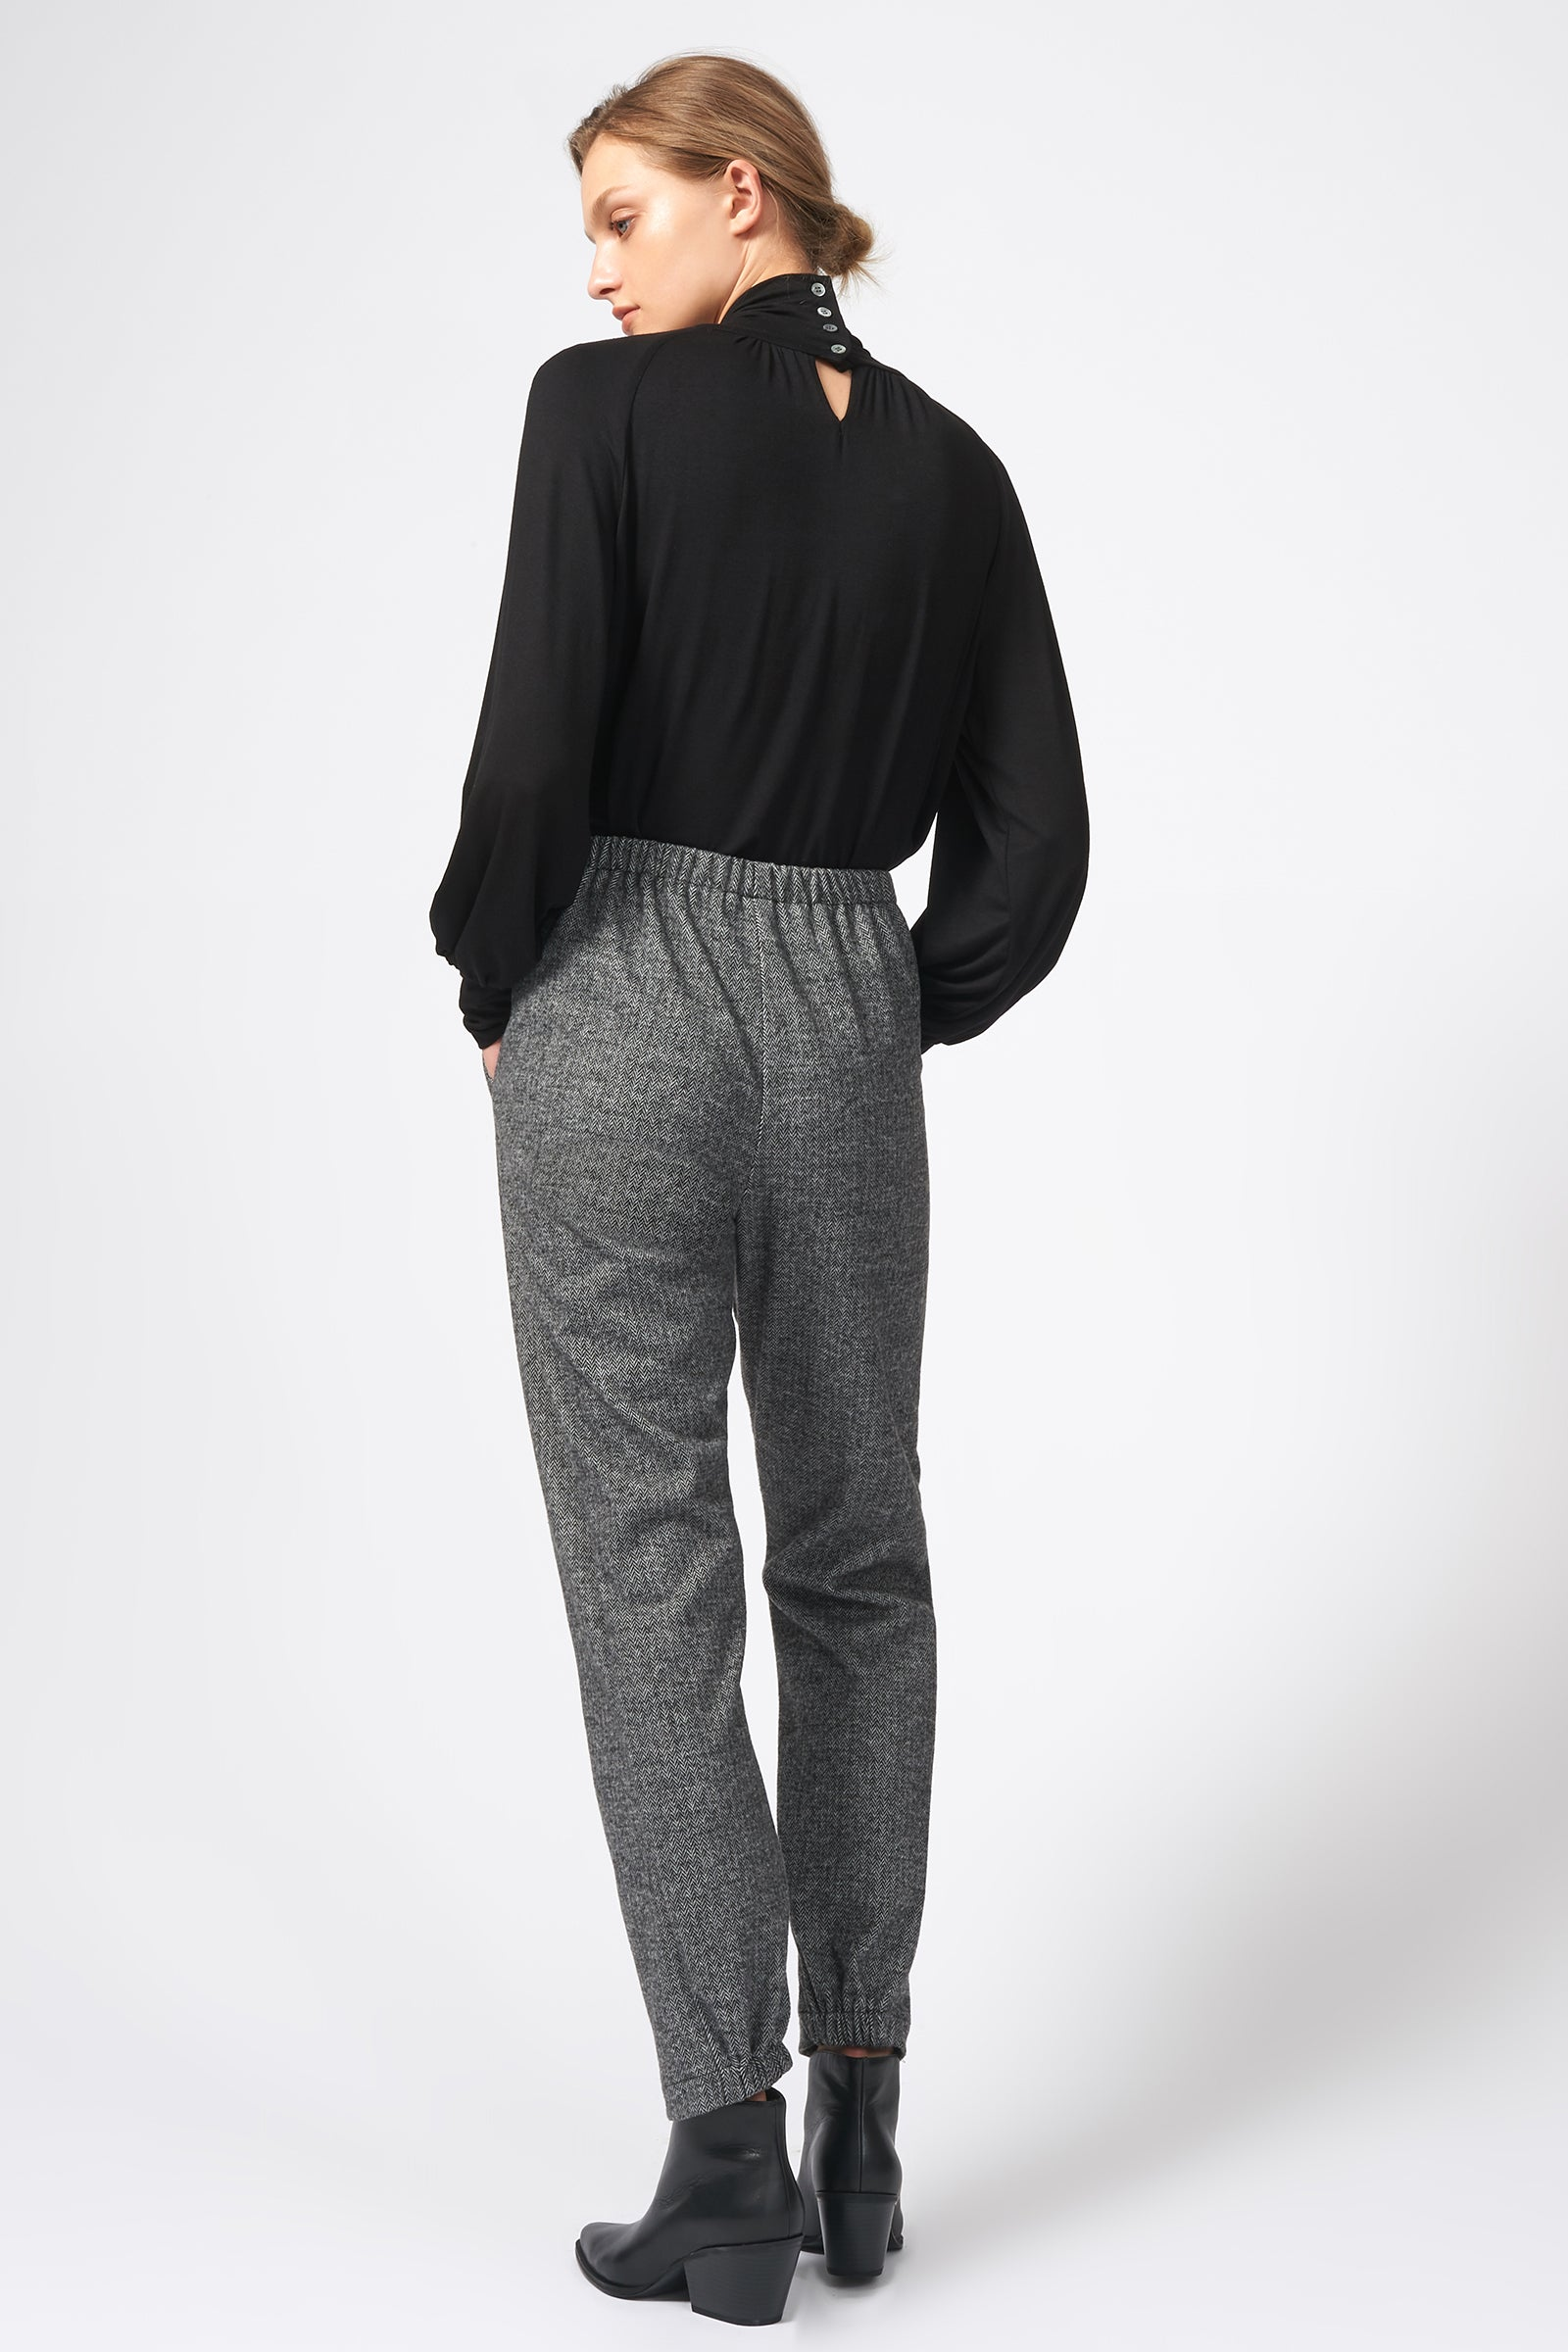 Kal Rieman Angle Seam Jogger in Black Chevron on Model Full Back View